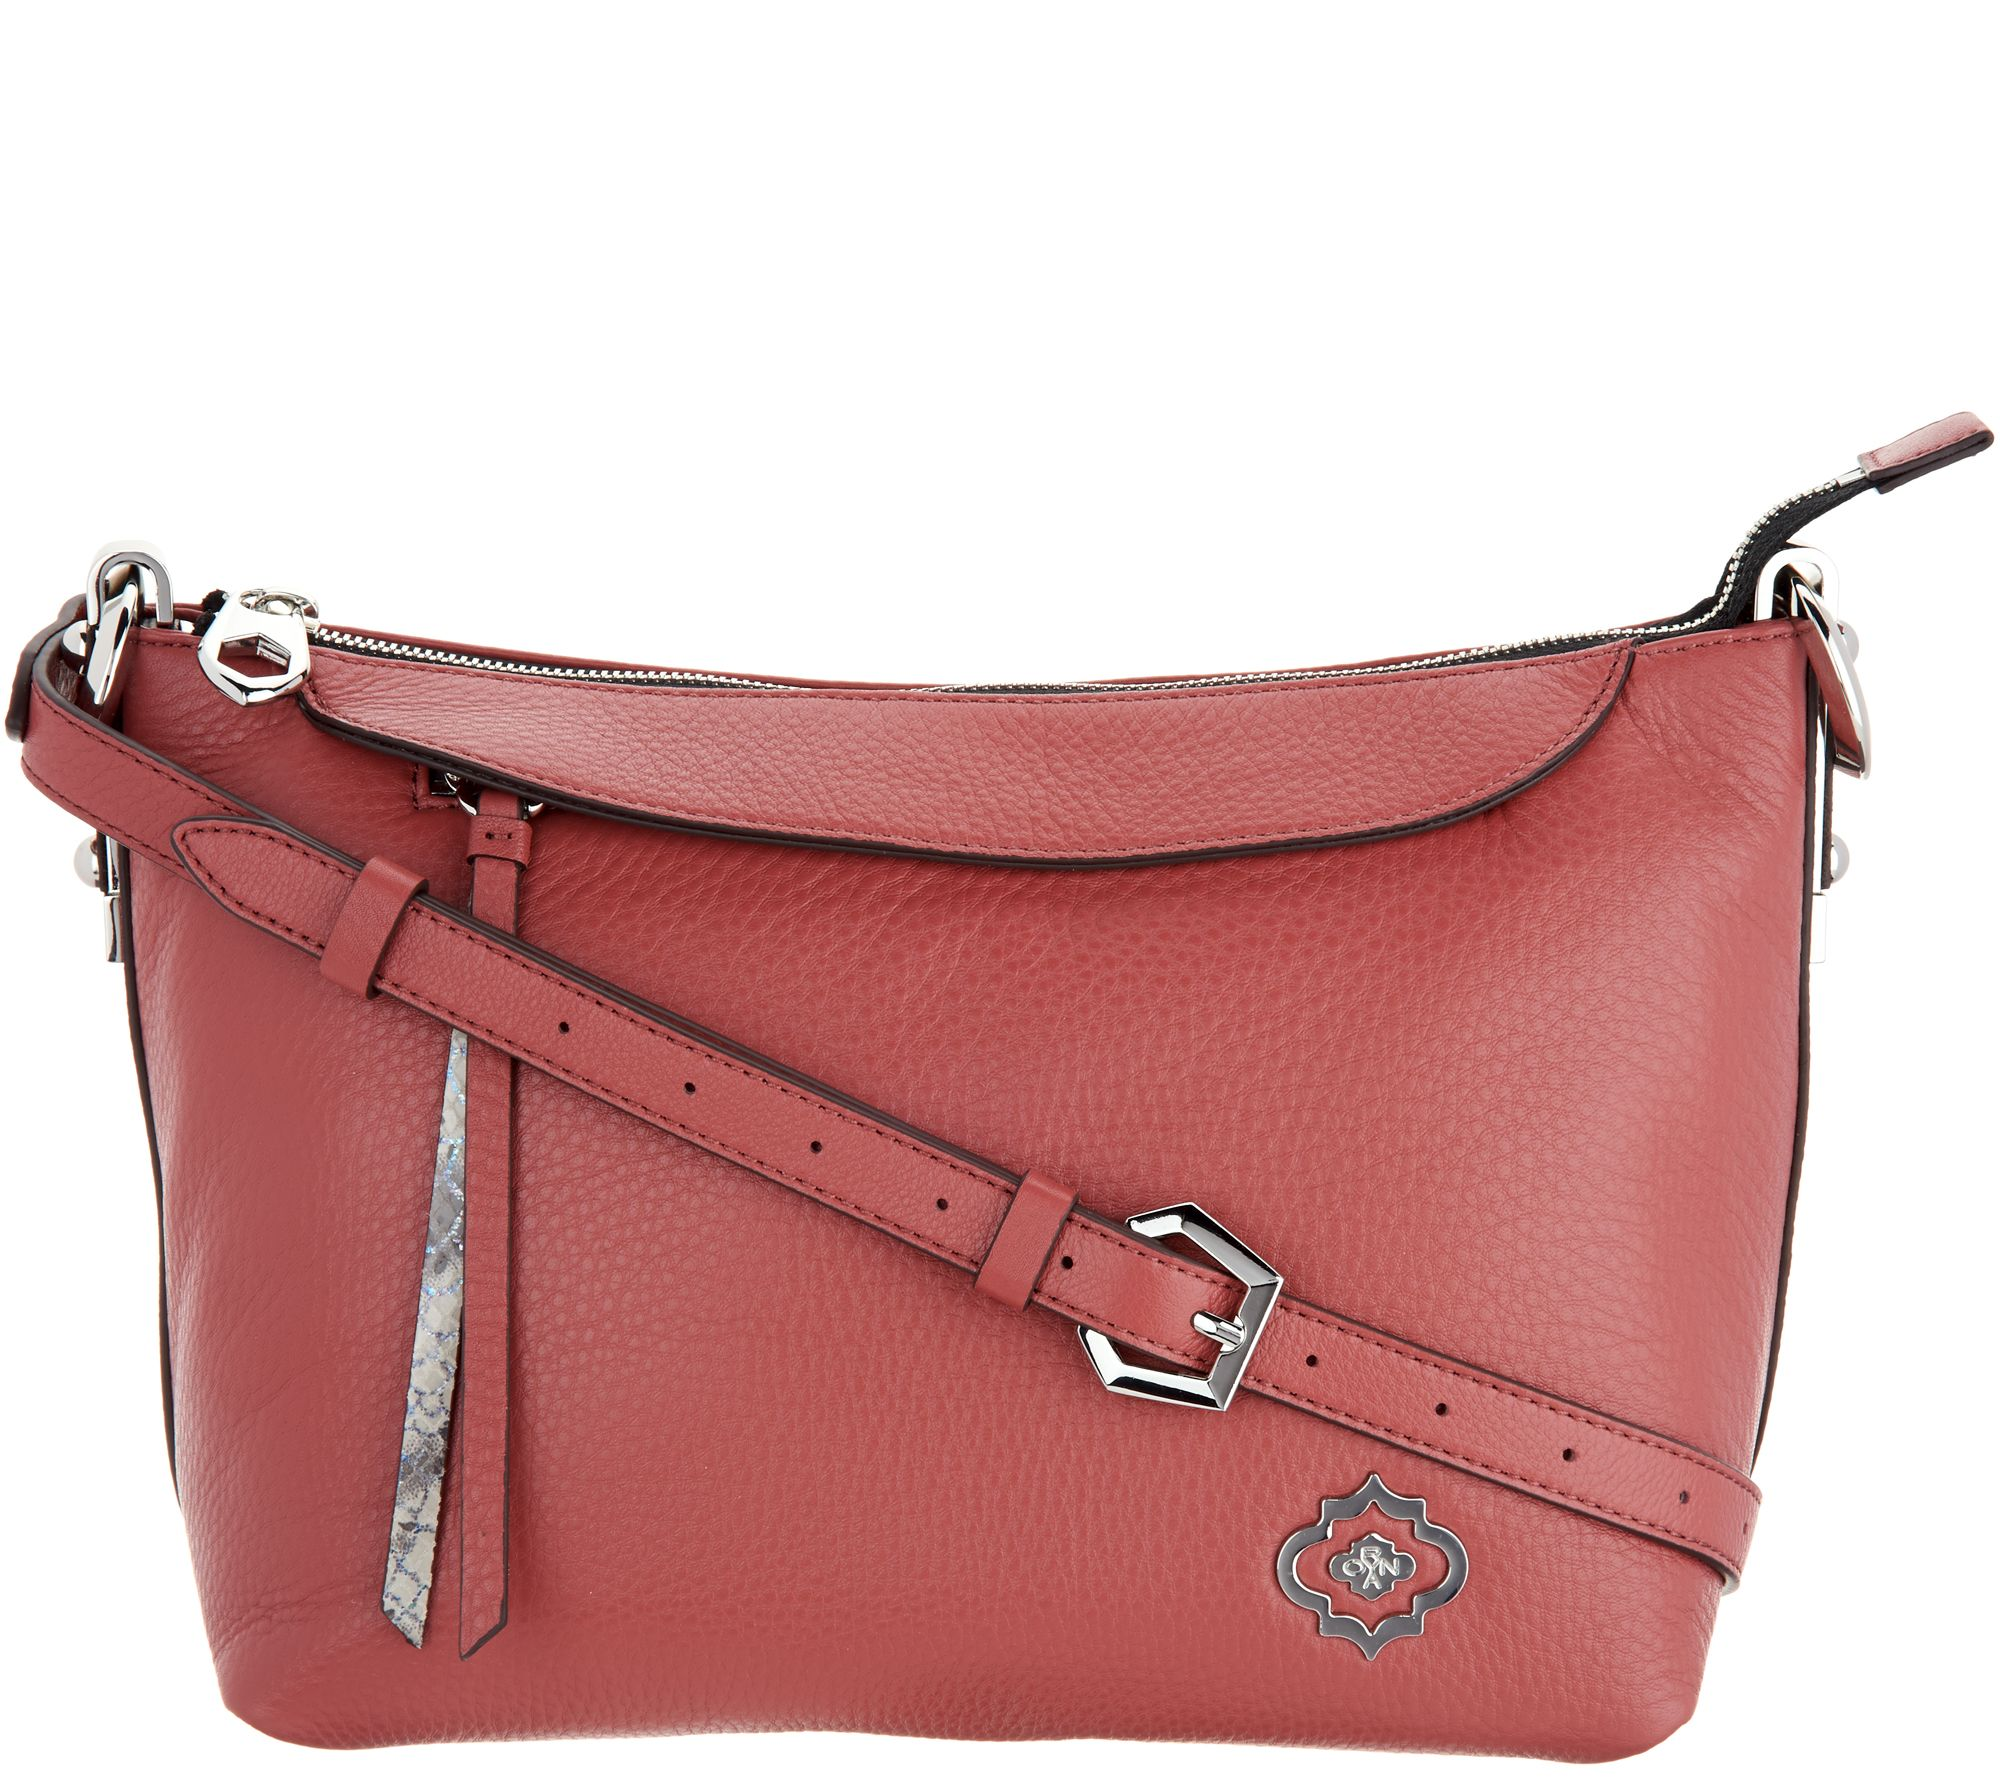 Extra small ladies leather gloves uk - Oryany Pebble Leather Larissa Crossbody A292984